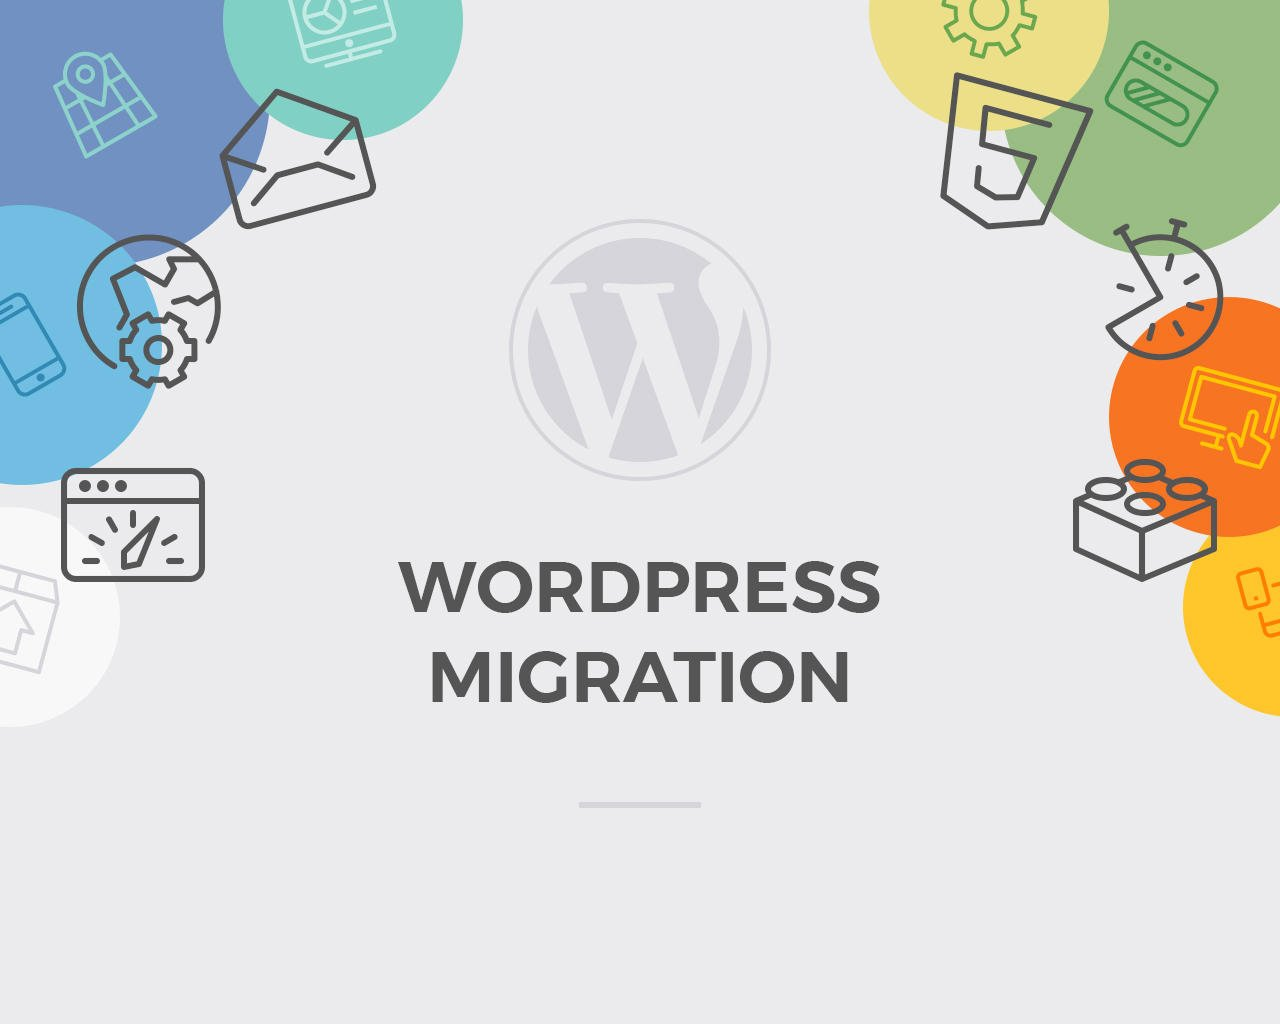 WordPress Migration by QuanticaLabs - 109797